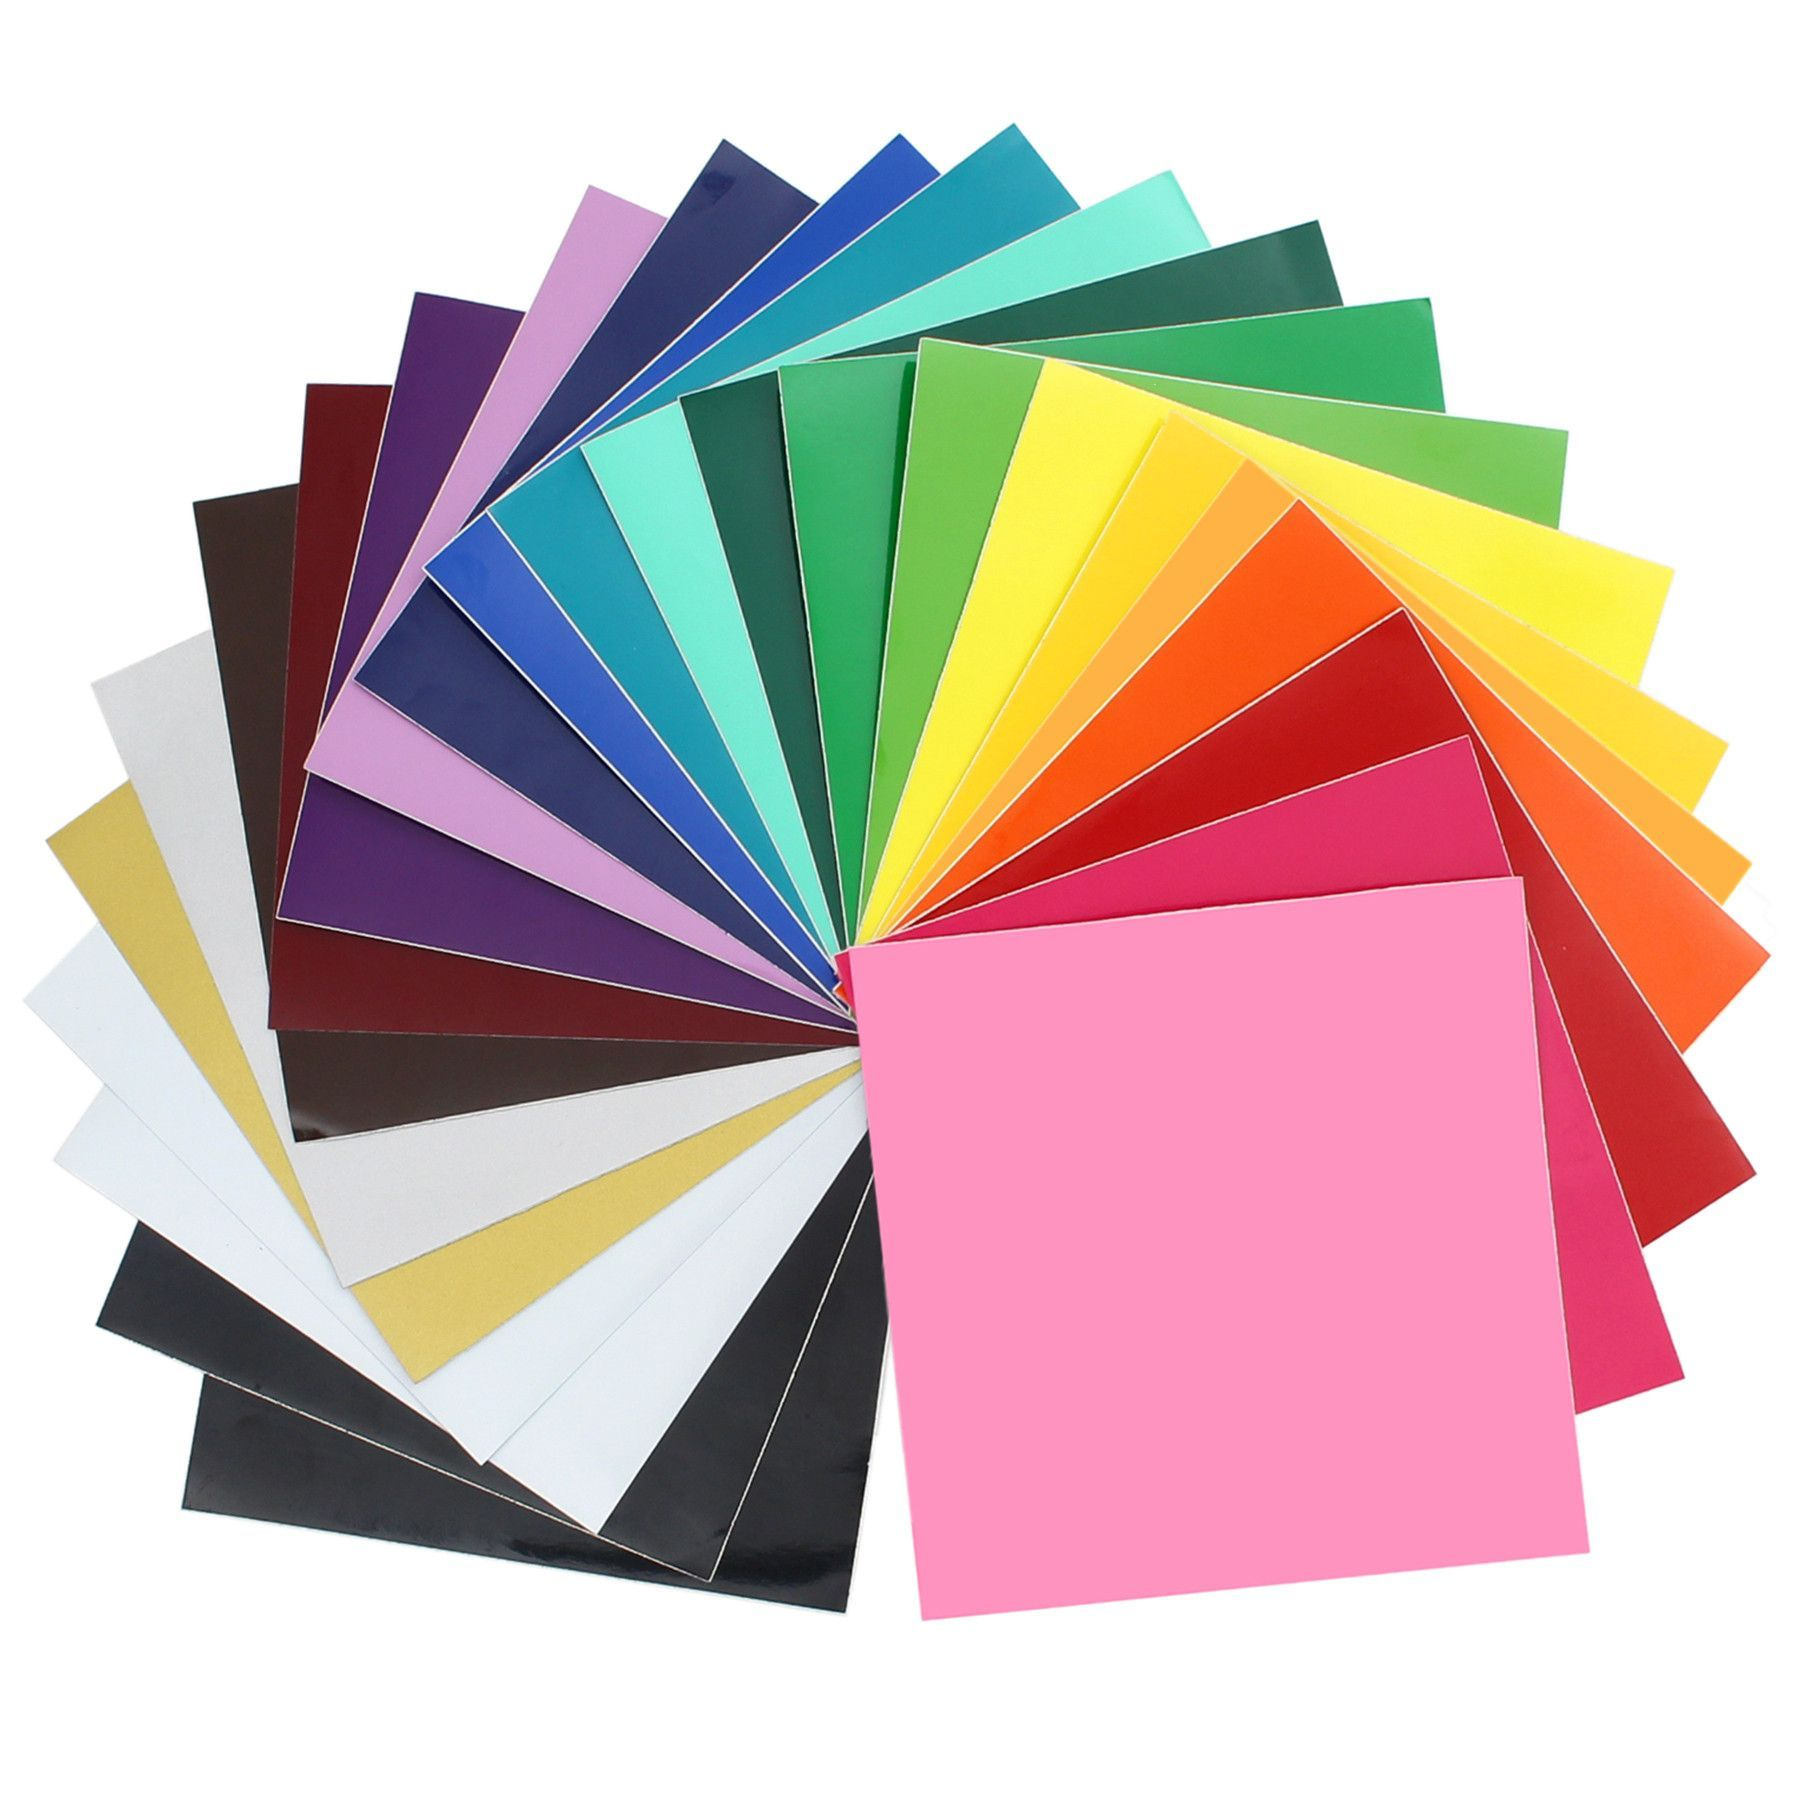 Oracal 651 Vinyl Bundle 12 X 12 24 Assorted Colors With Swatch Book Oracal Oracal Vinyl Vinyl